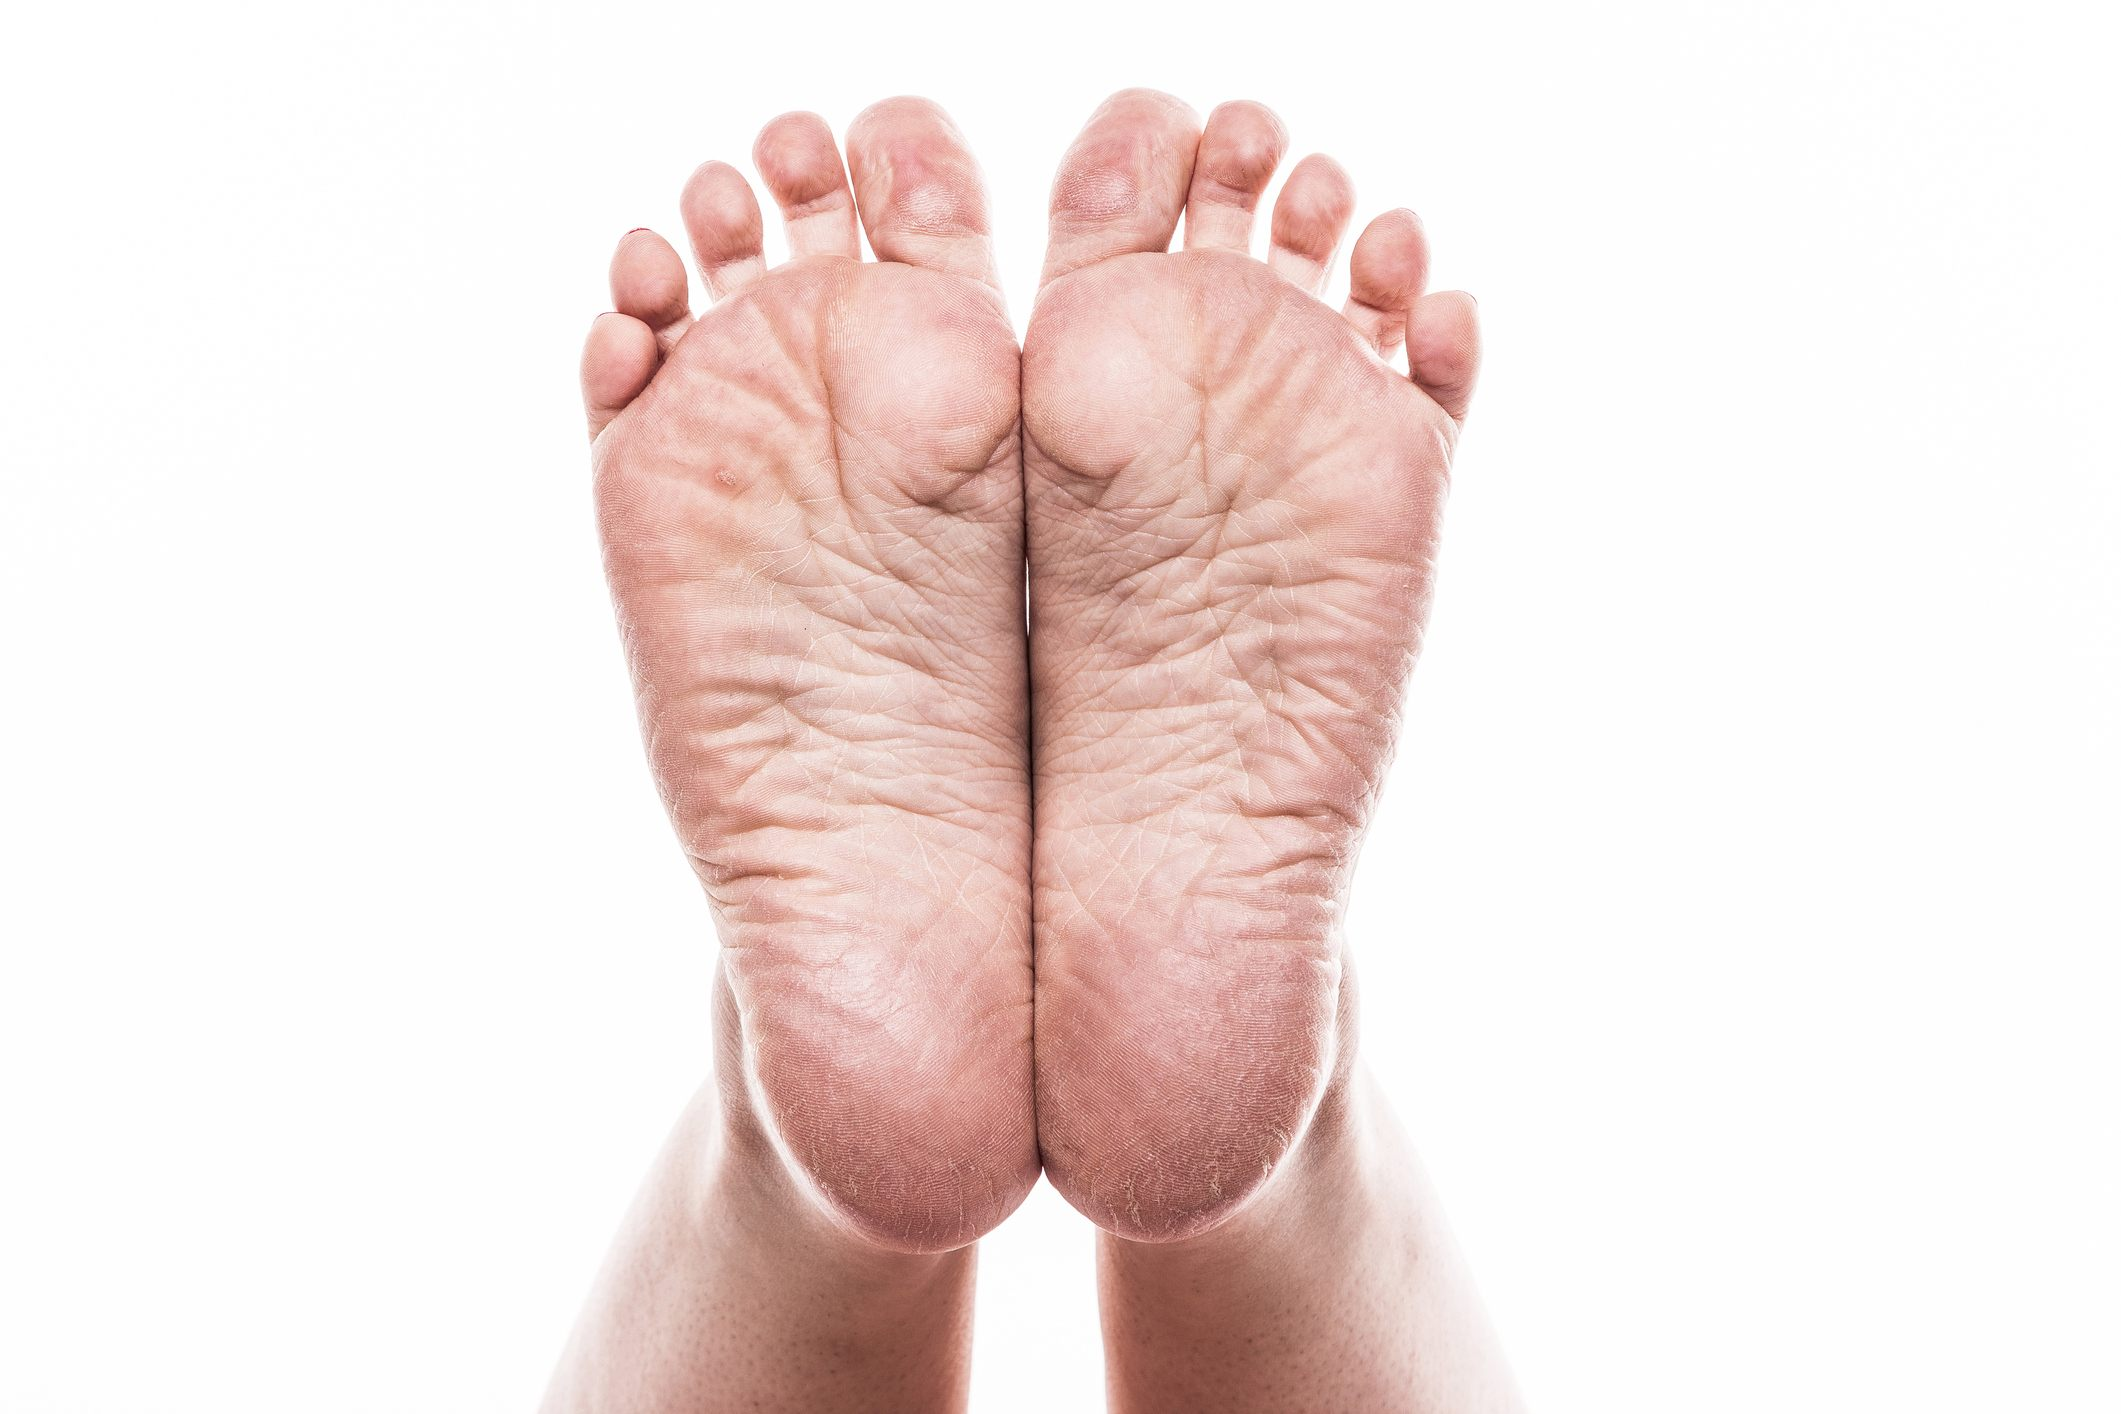 foot with pedicure and poor over-dry skin on the heels